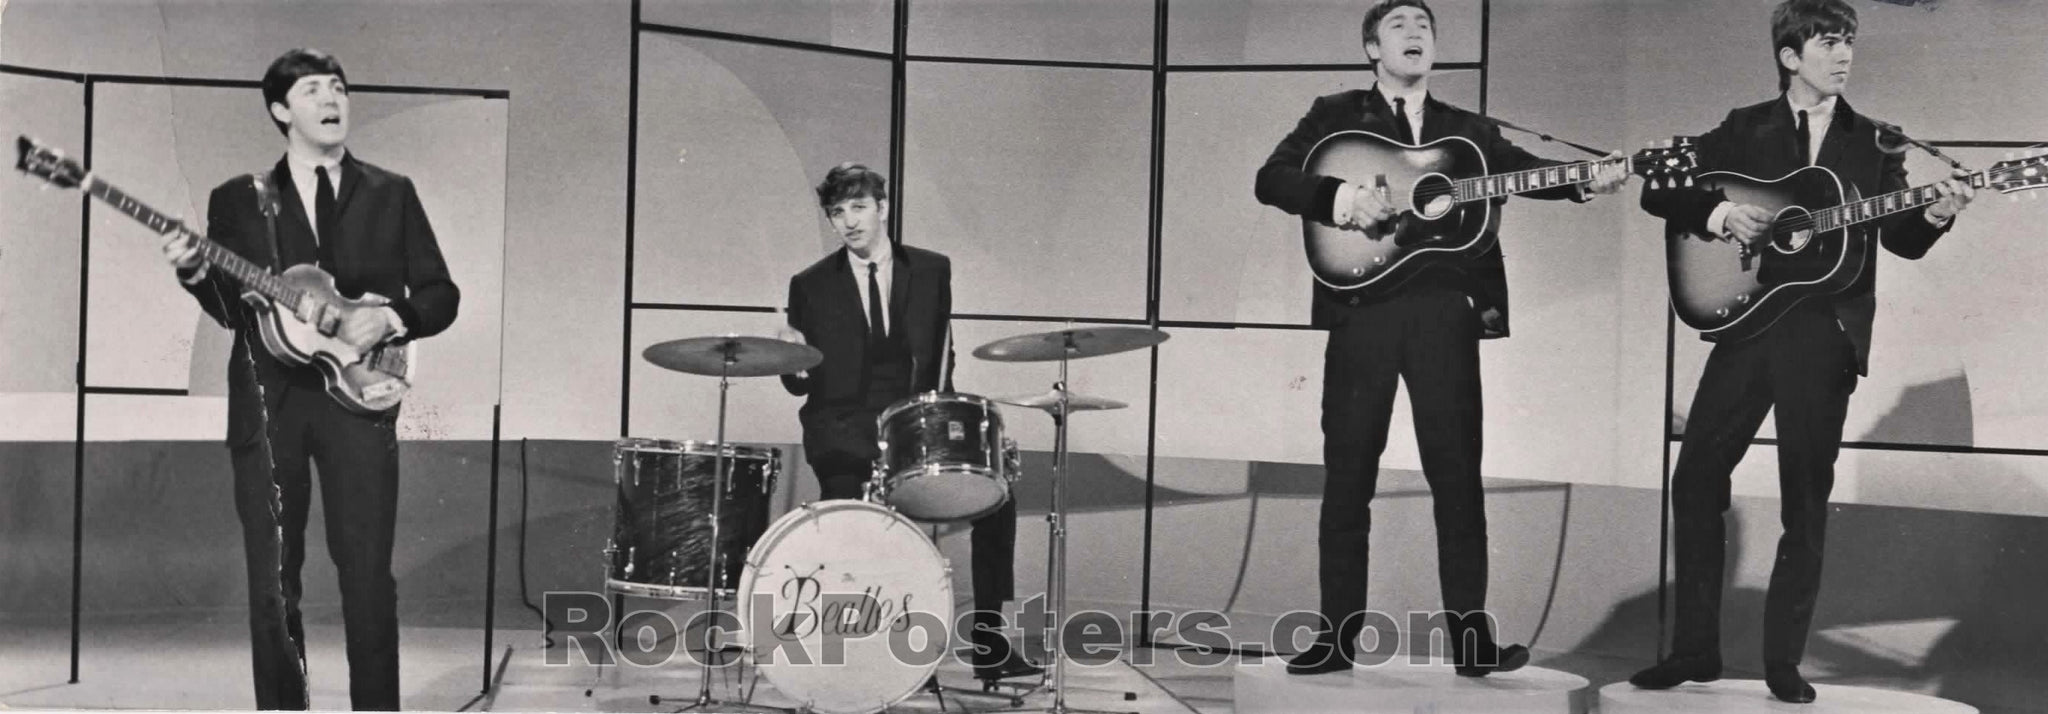 The Beatles - ABC Television Small Photo - Very Good